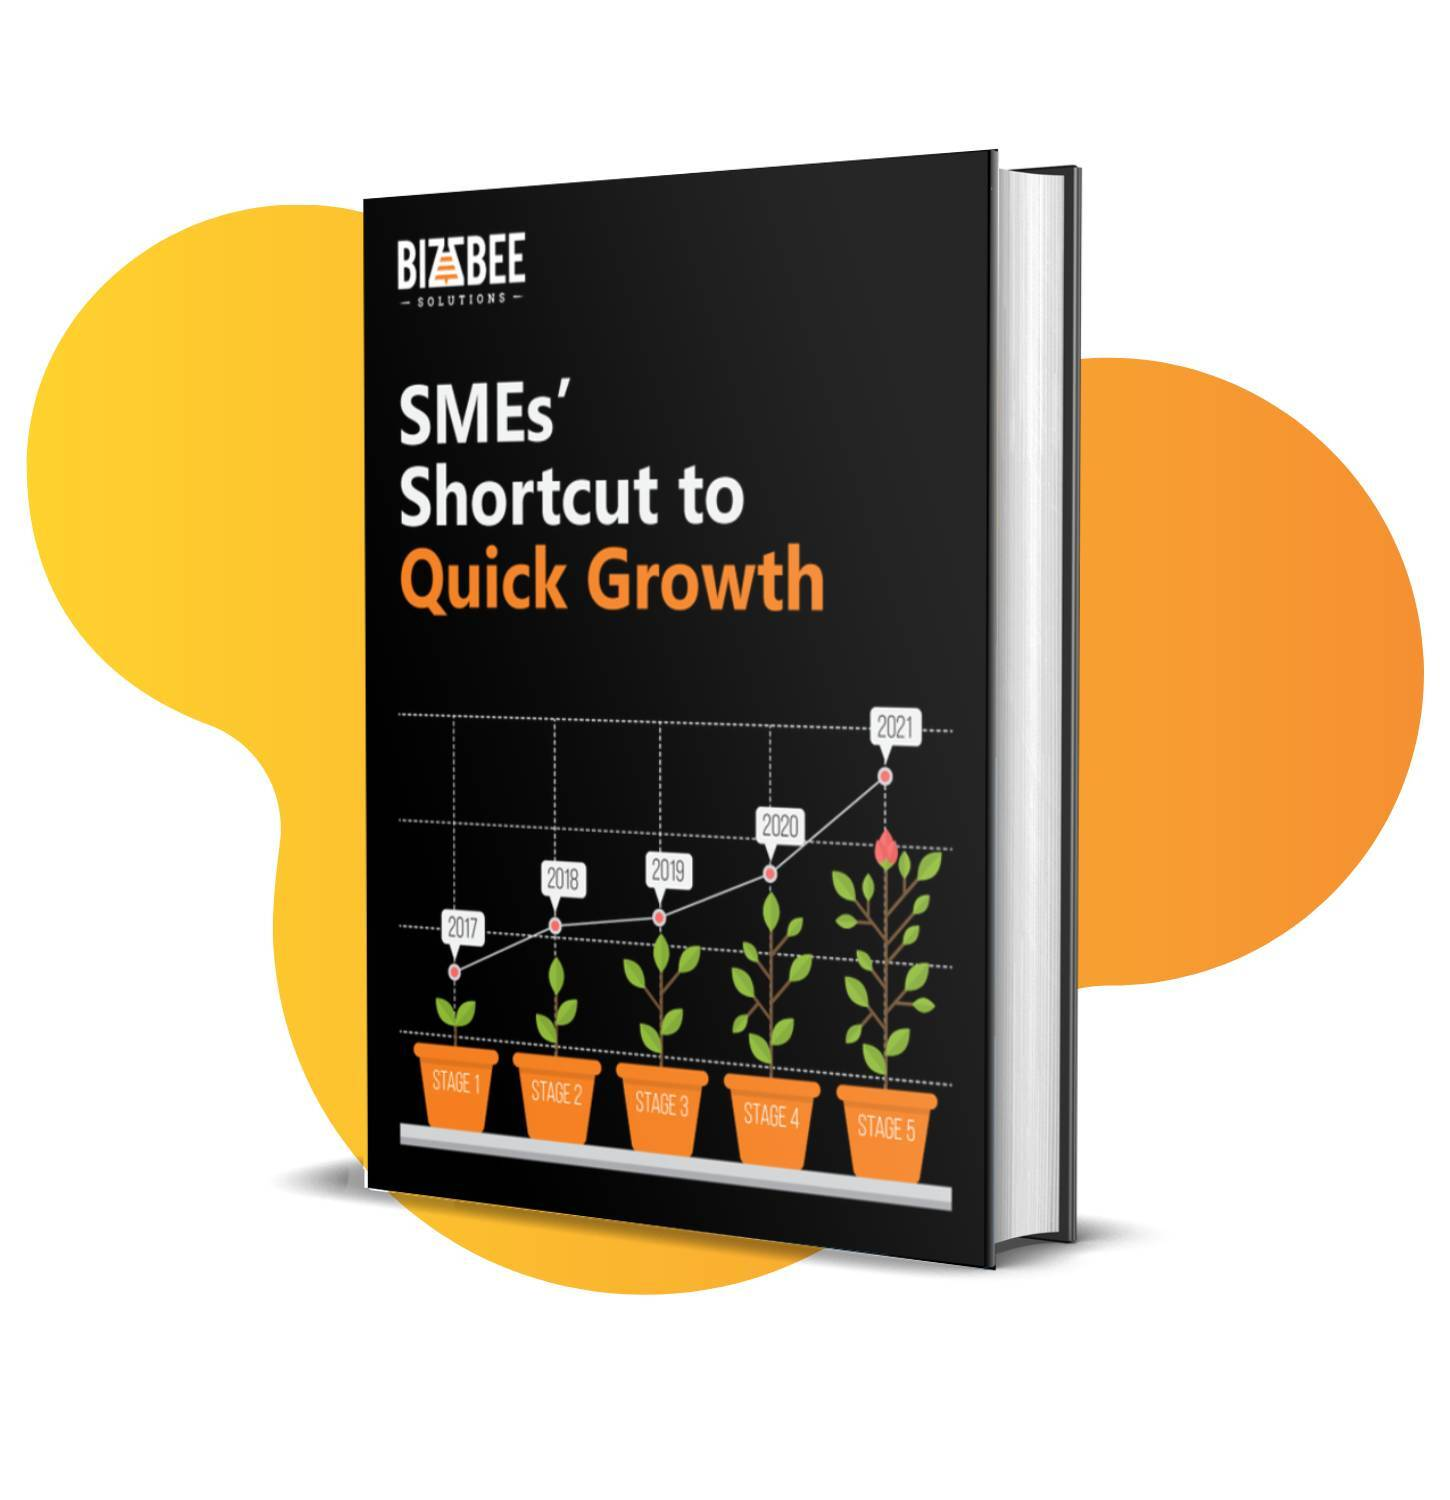 BizzBee's ebook 'SMEs Shortcut to Quick Growth' cover design.